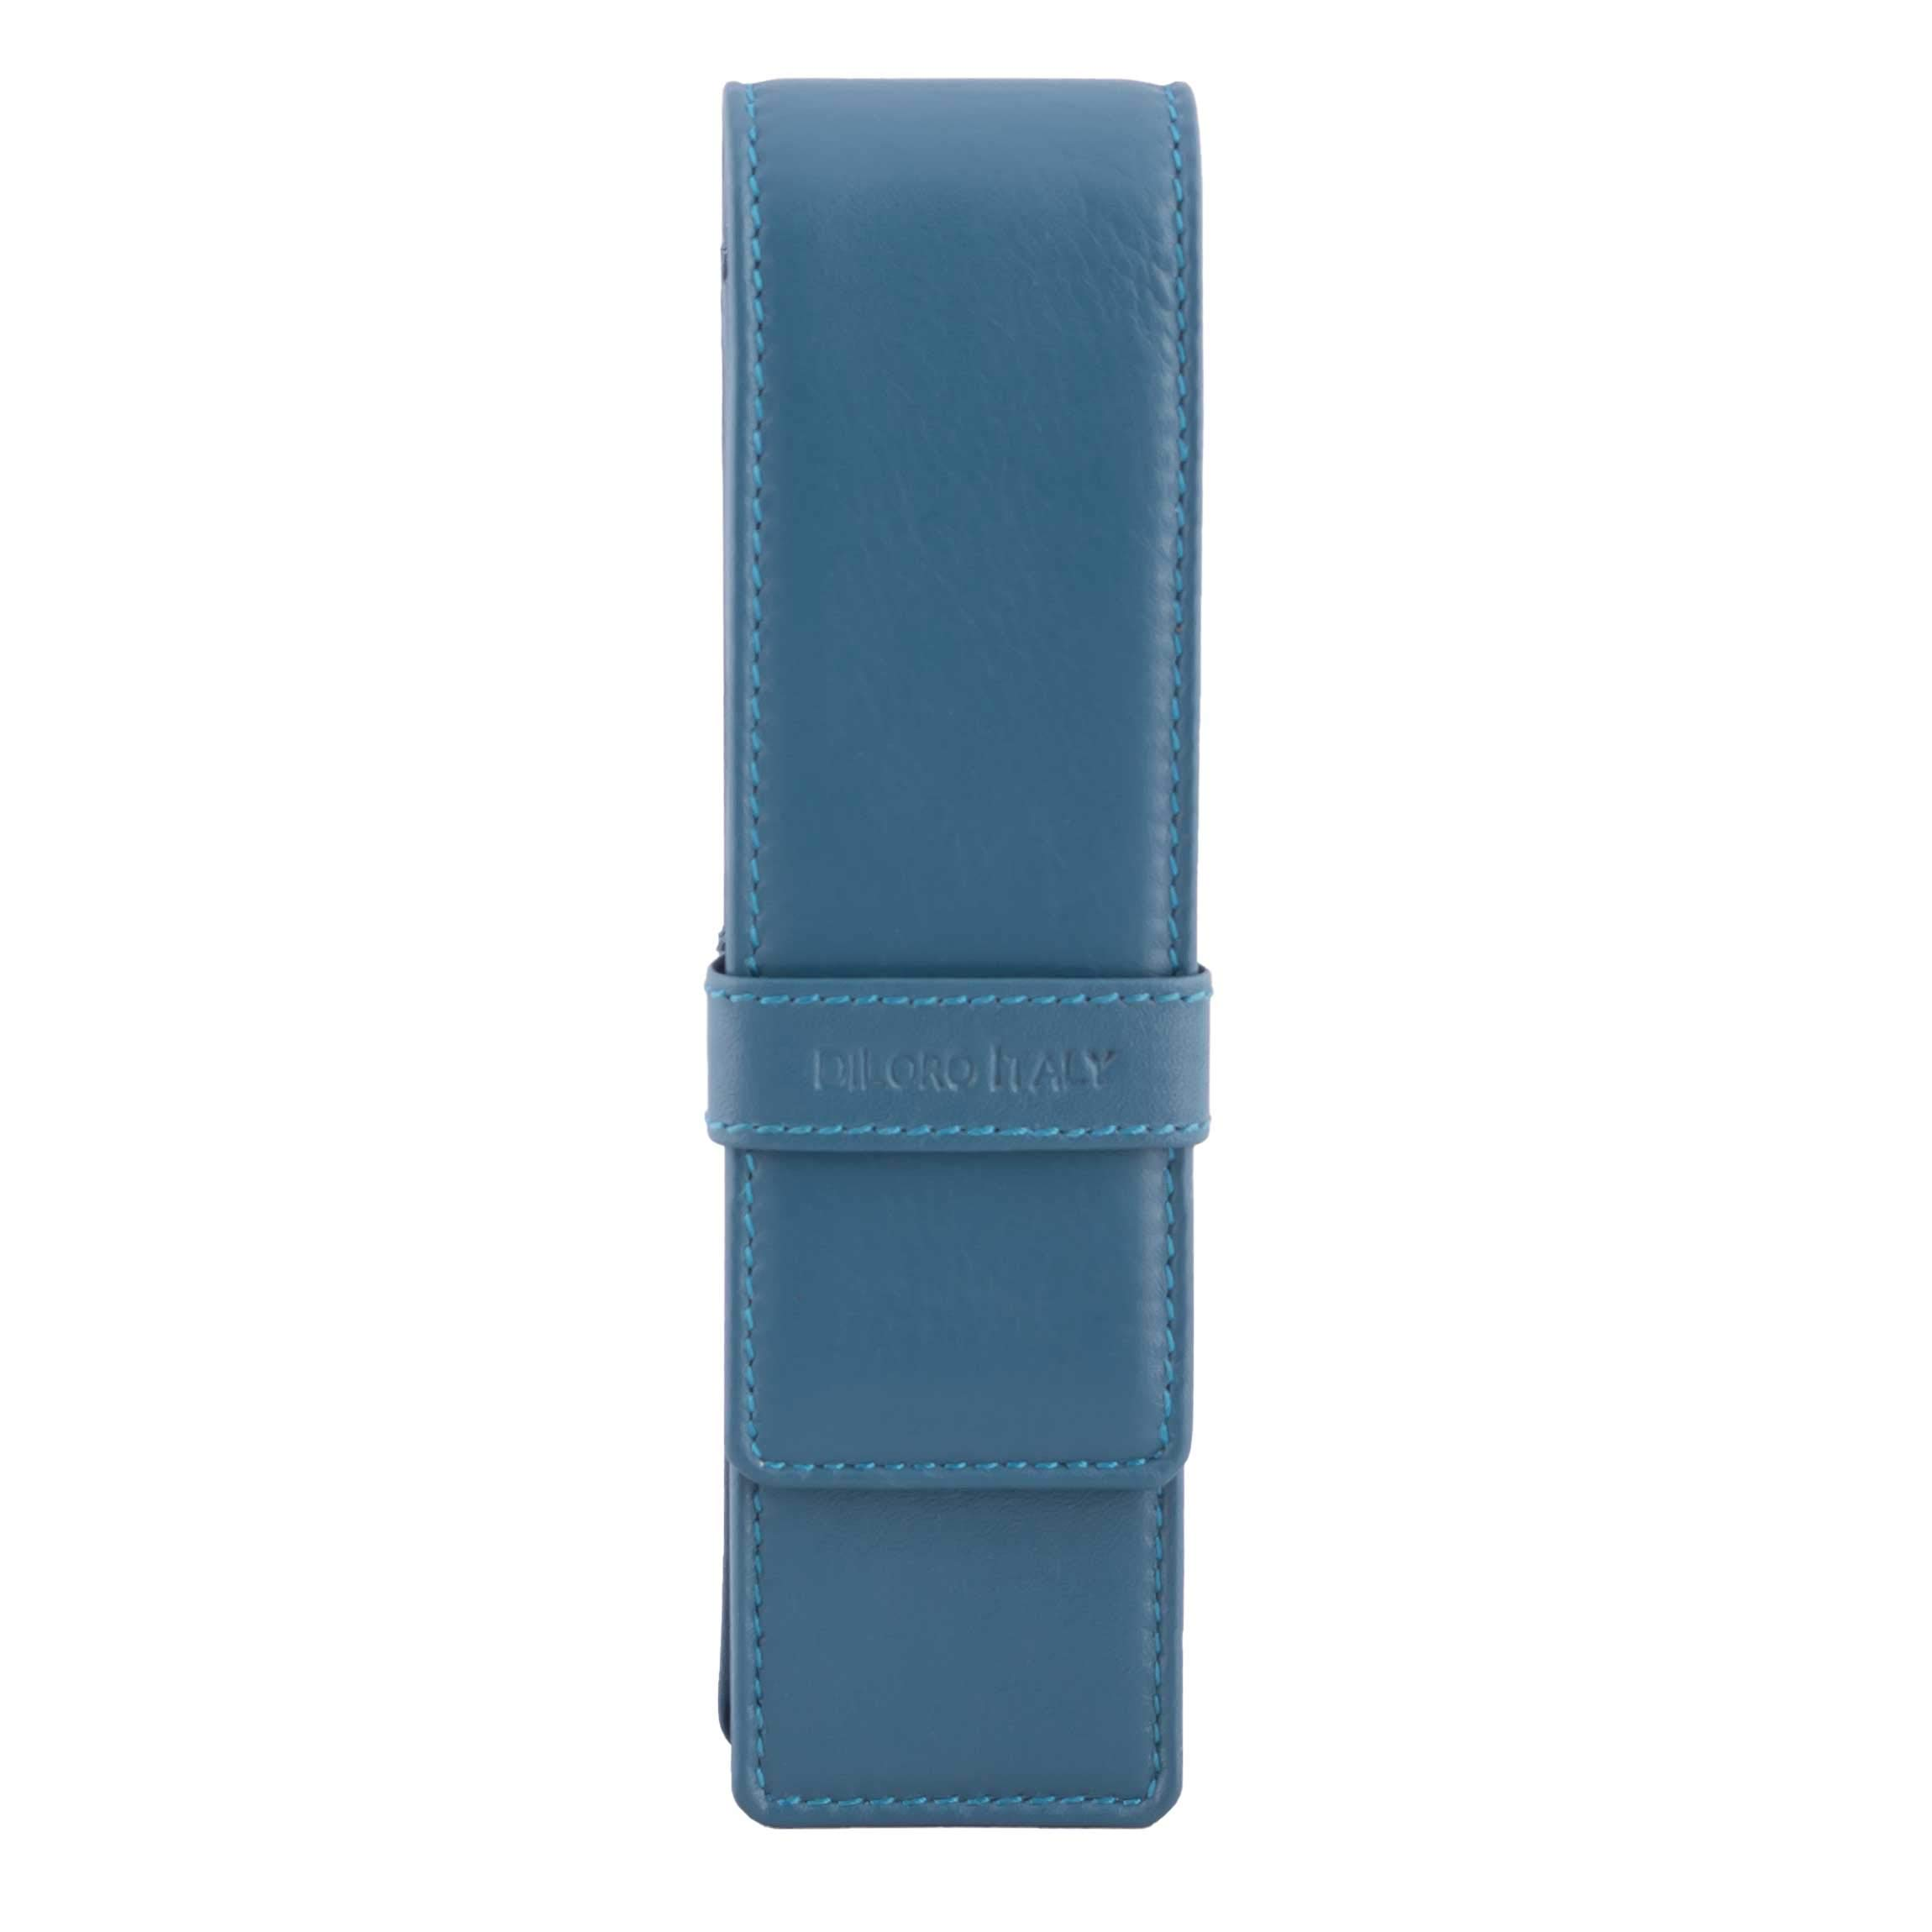 DiLoro Leather Pen Case Pouch Holder for Two Fountain Pens Ballpoint Rollerball Pen or Pencils (Sololio Blue)